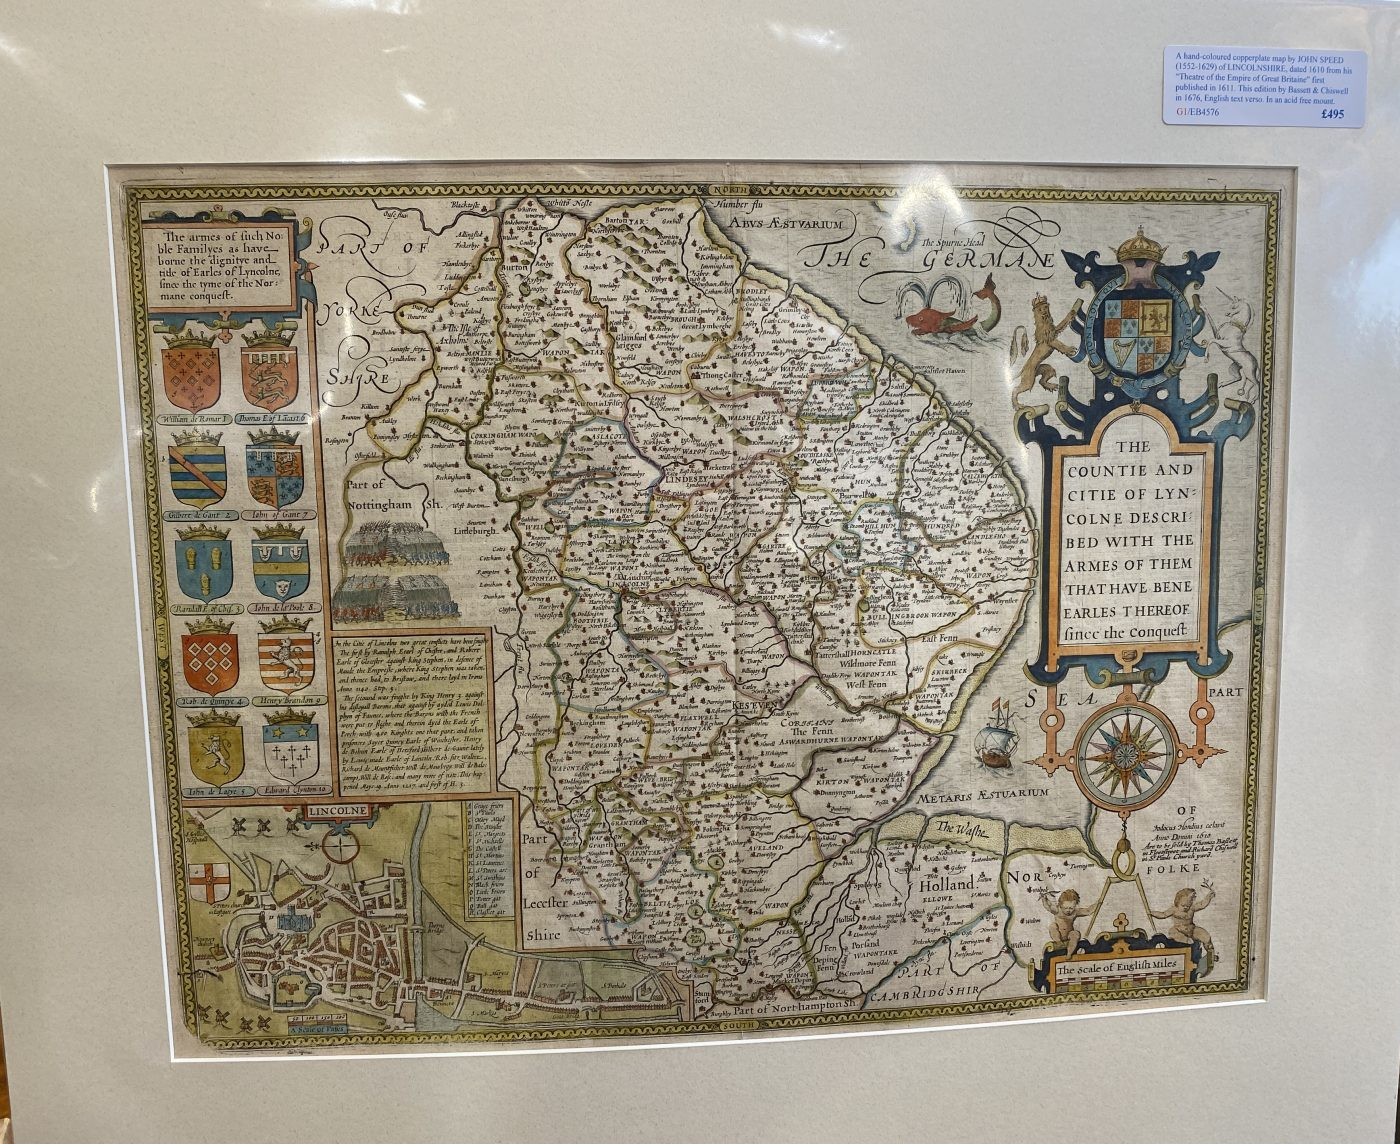 G1 - A Hand-coloured copperplate map of LINCOLNSHIRE by John Speed (1552-1629), from his Theatre of the Empire of Great Britaine. This edition published by Bassett & Chiswell in 1676, English text verso. New acid free mount ready for framing.   £495